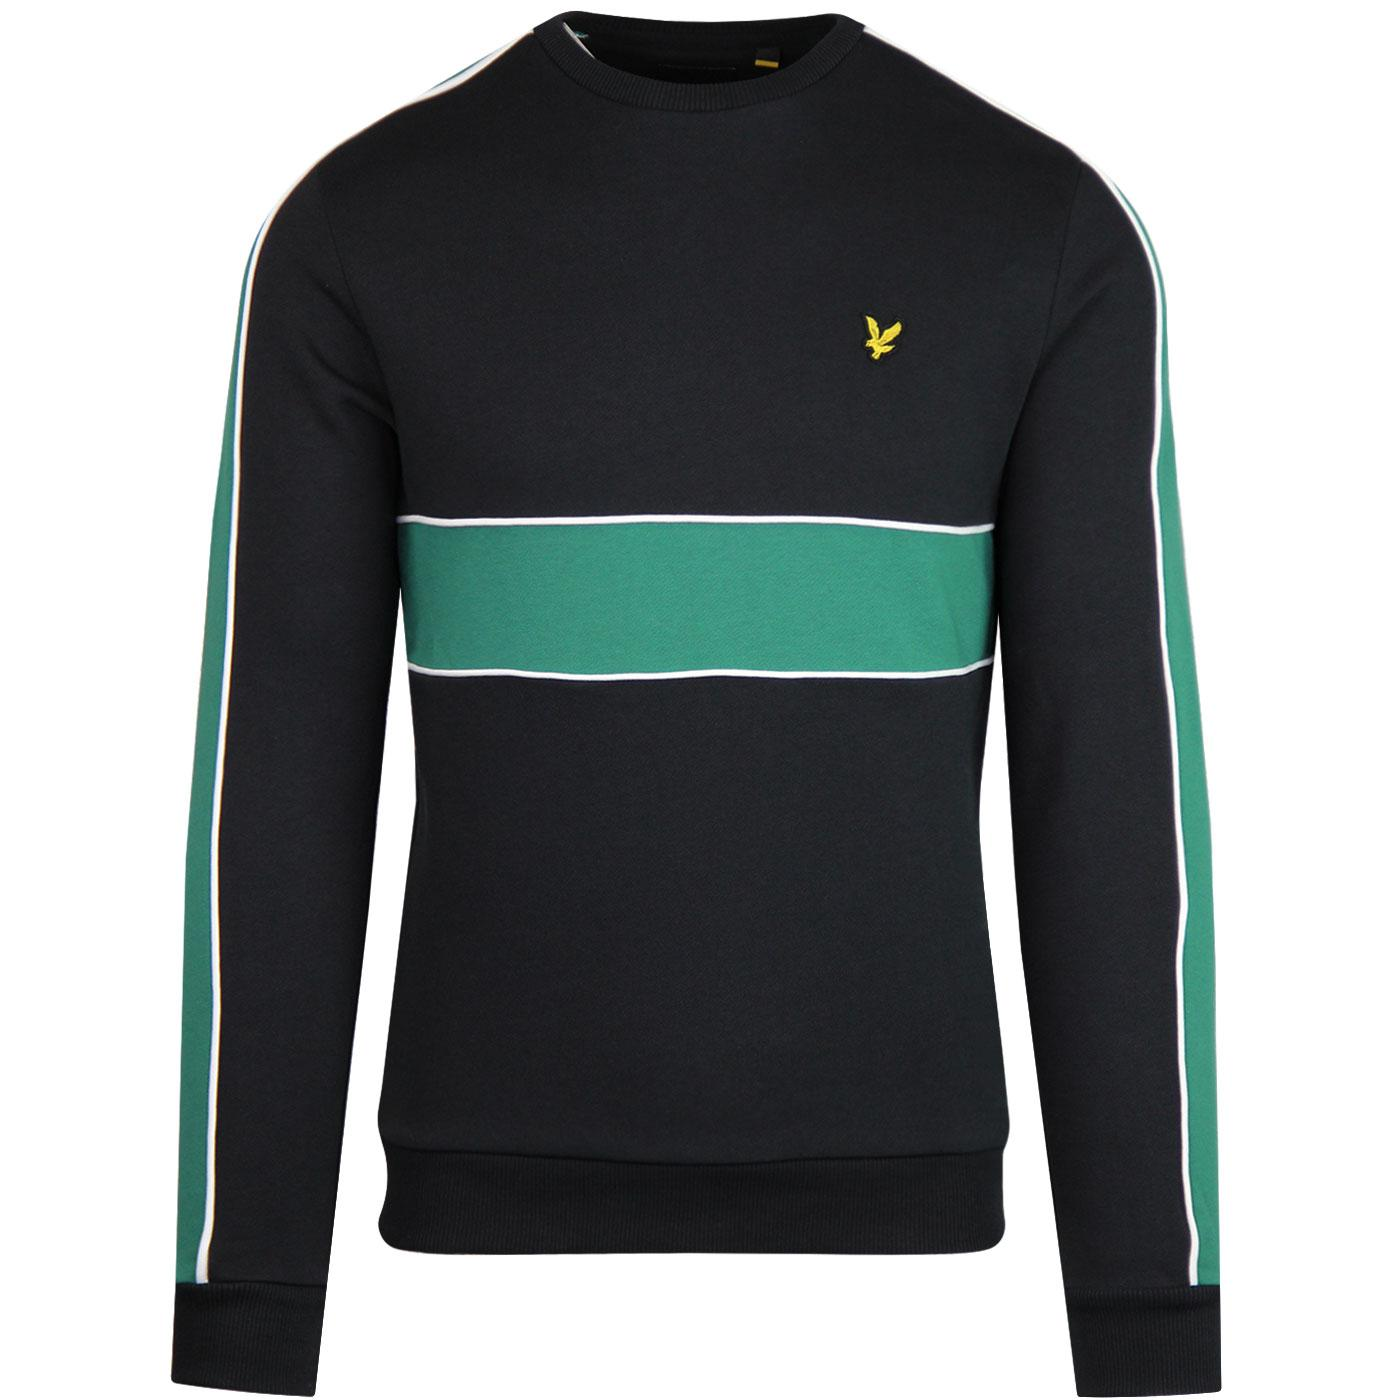 LYLE & SCOTT Men's Cut & Sew Crew Neck Sweater